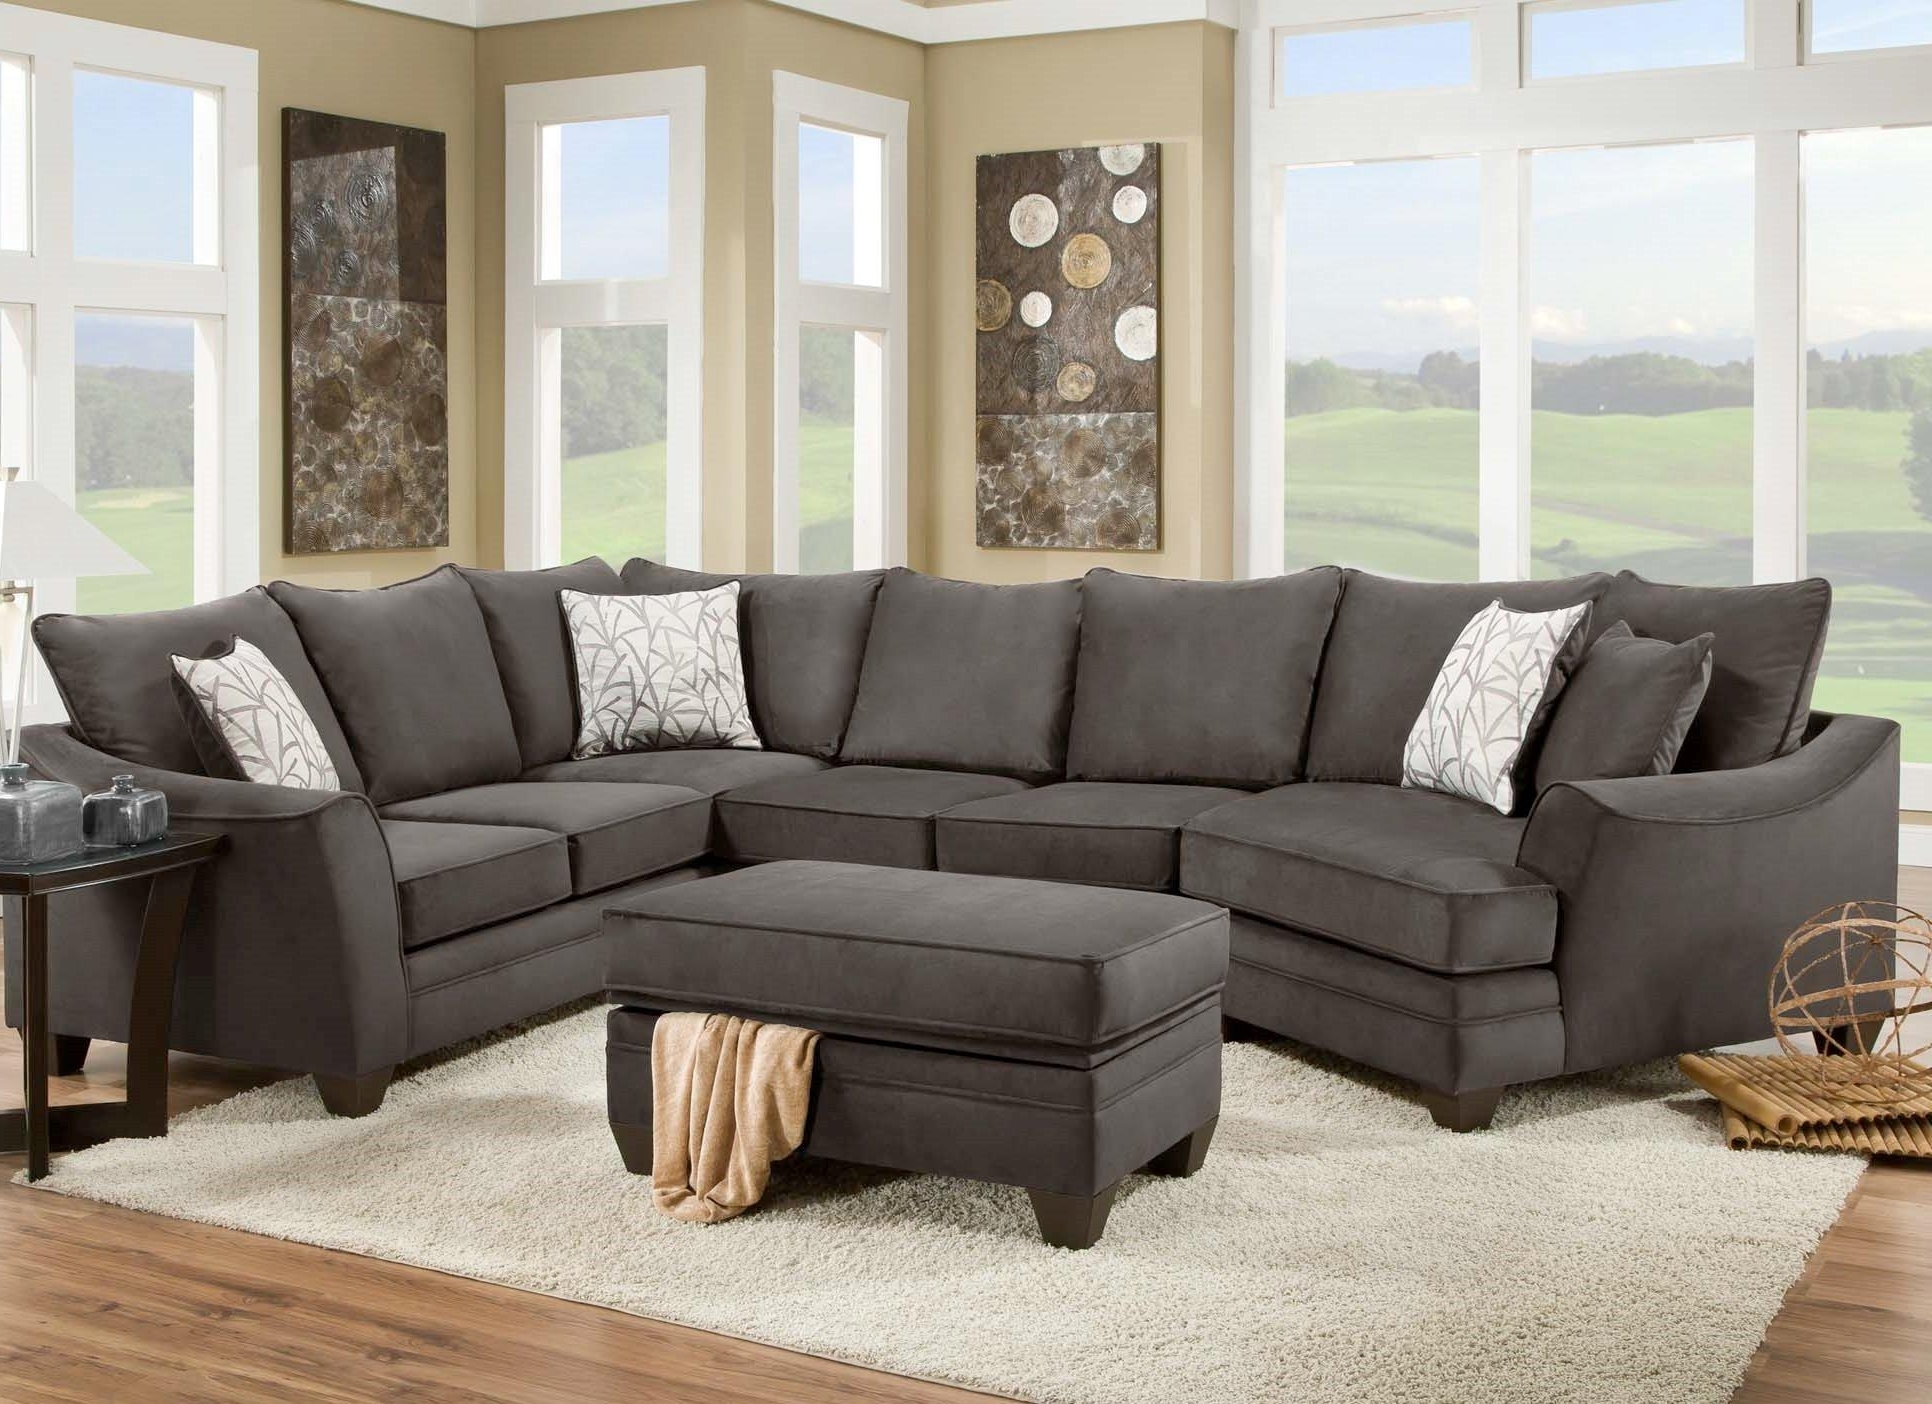 American Furniture 3810 Sectional Sofa That Seats 5 With Left Side Regarding Latest Hattiesburg Ms Sectional Sofas (View 8 of 15)